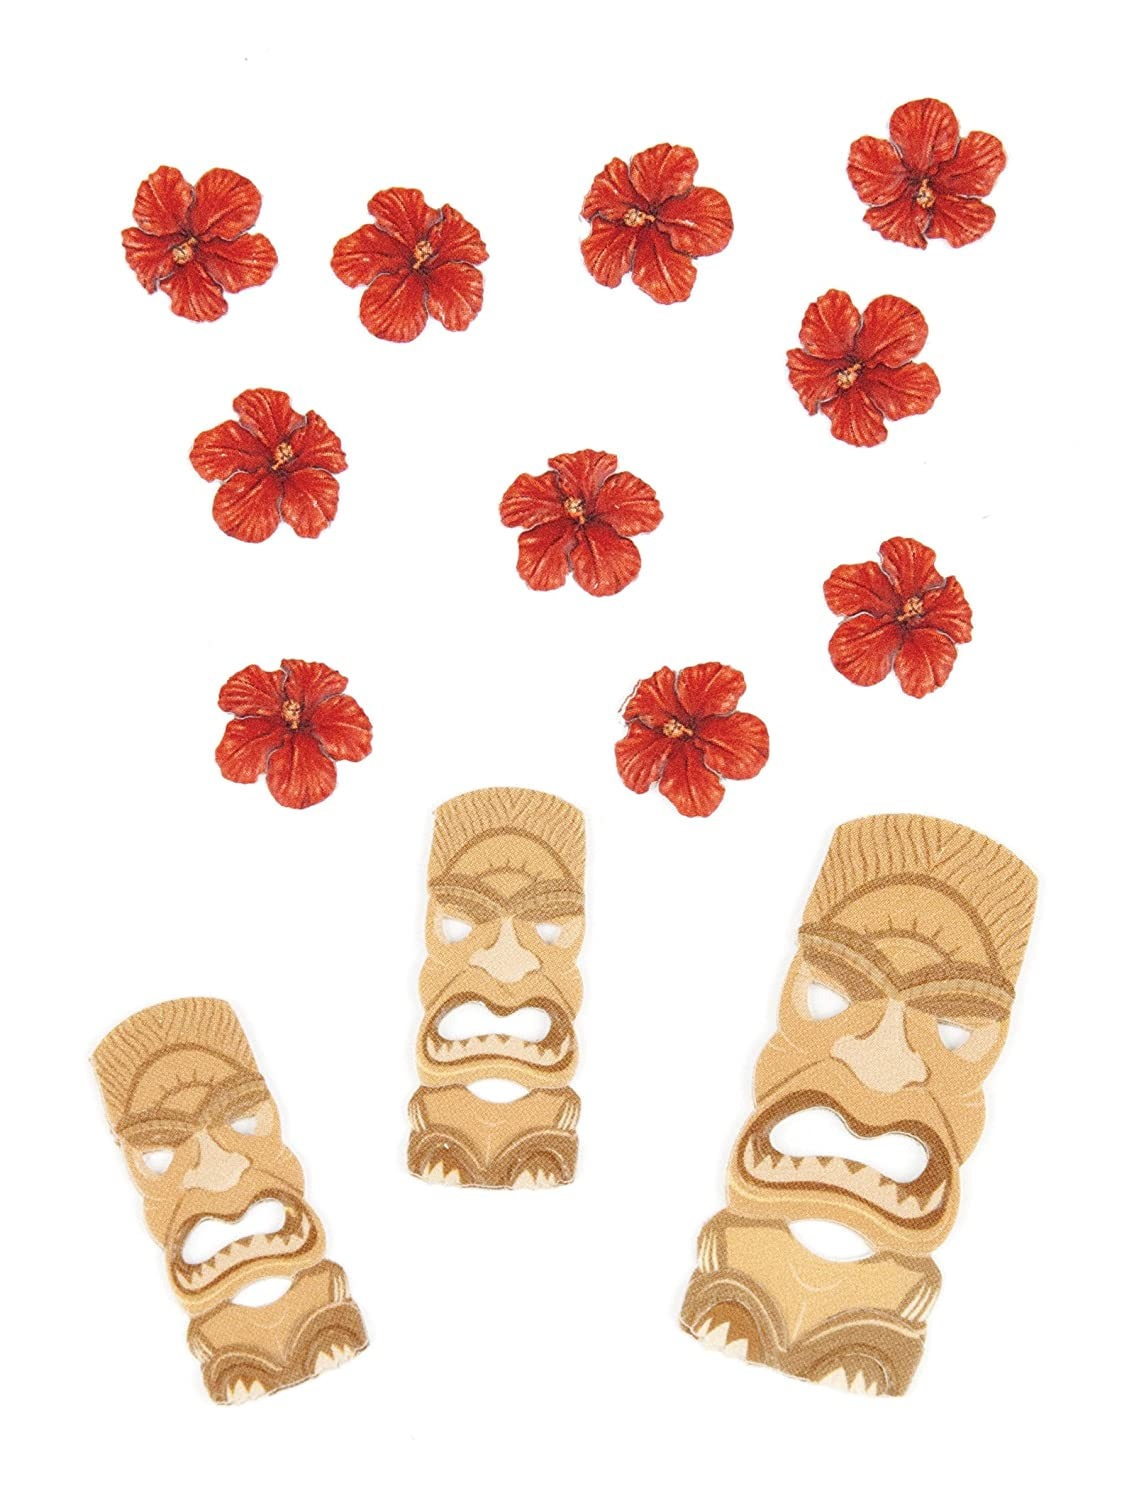 Jolee's Boutique Scrapbooking Embellishment, Tiki Masks and Flowers